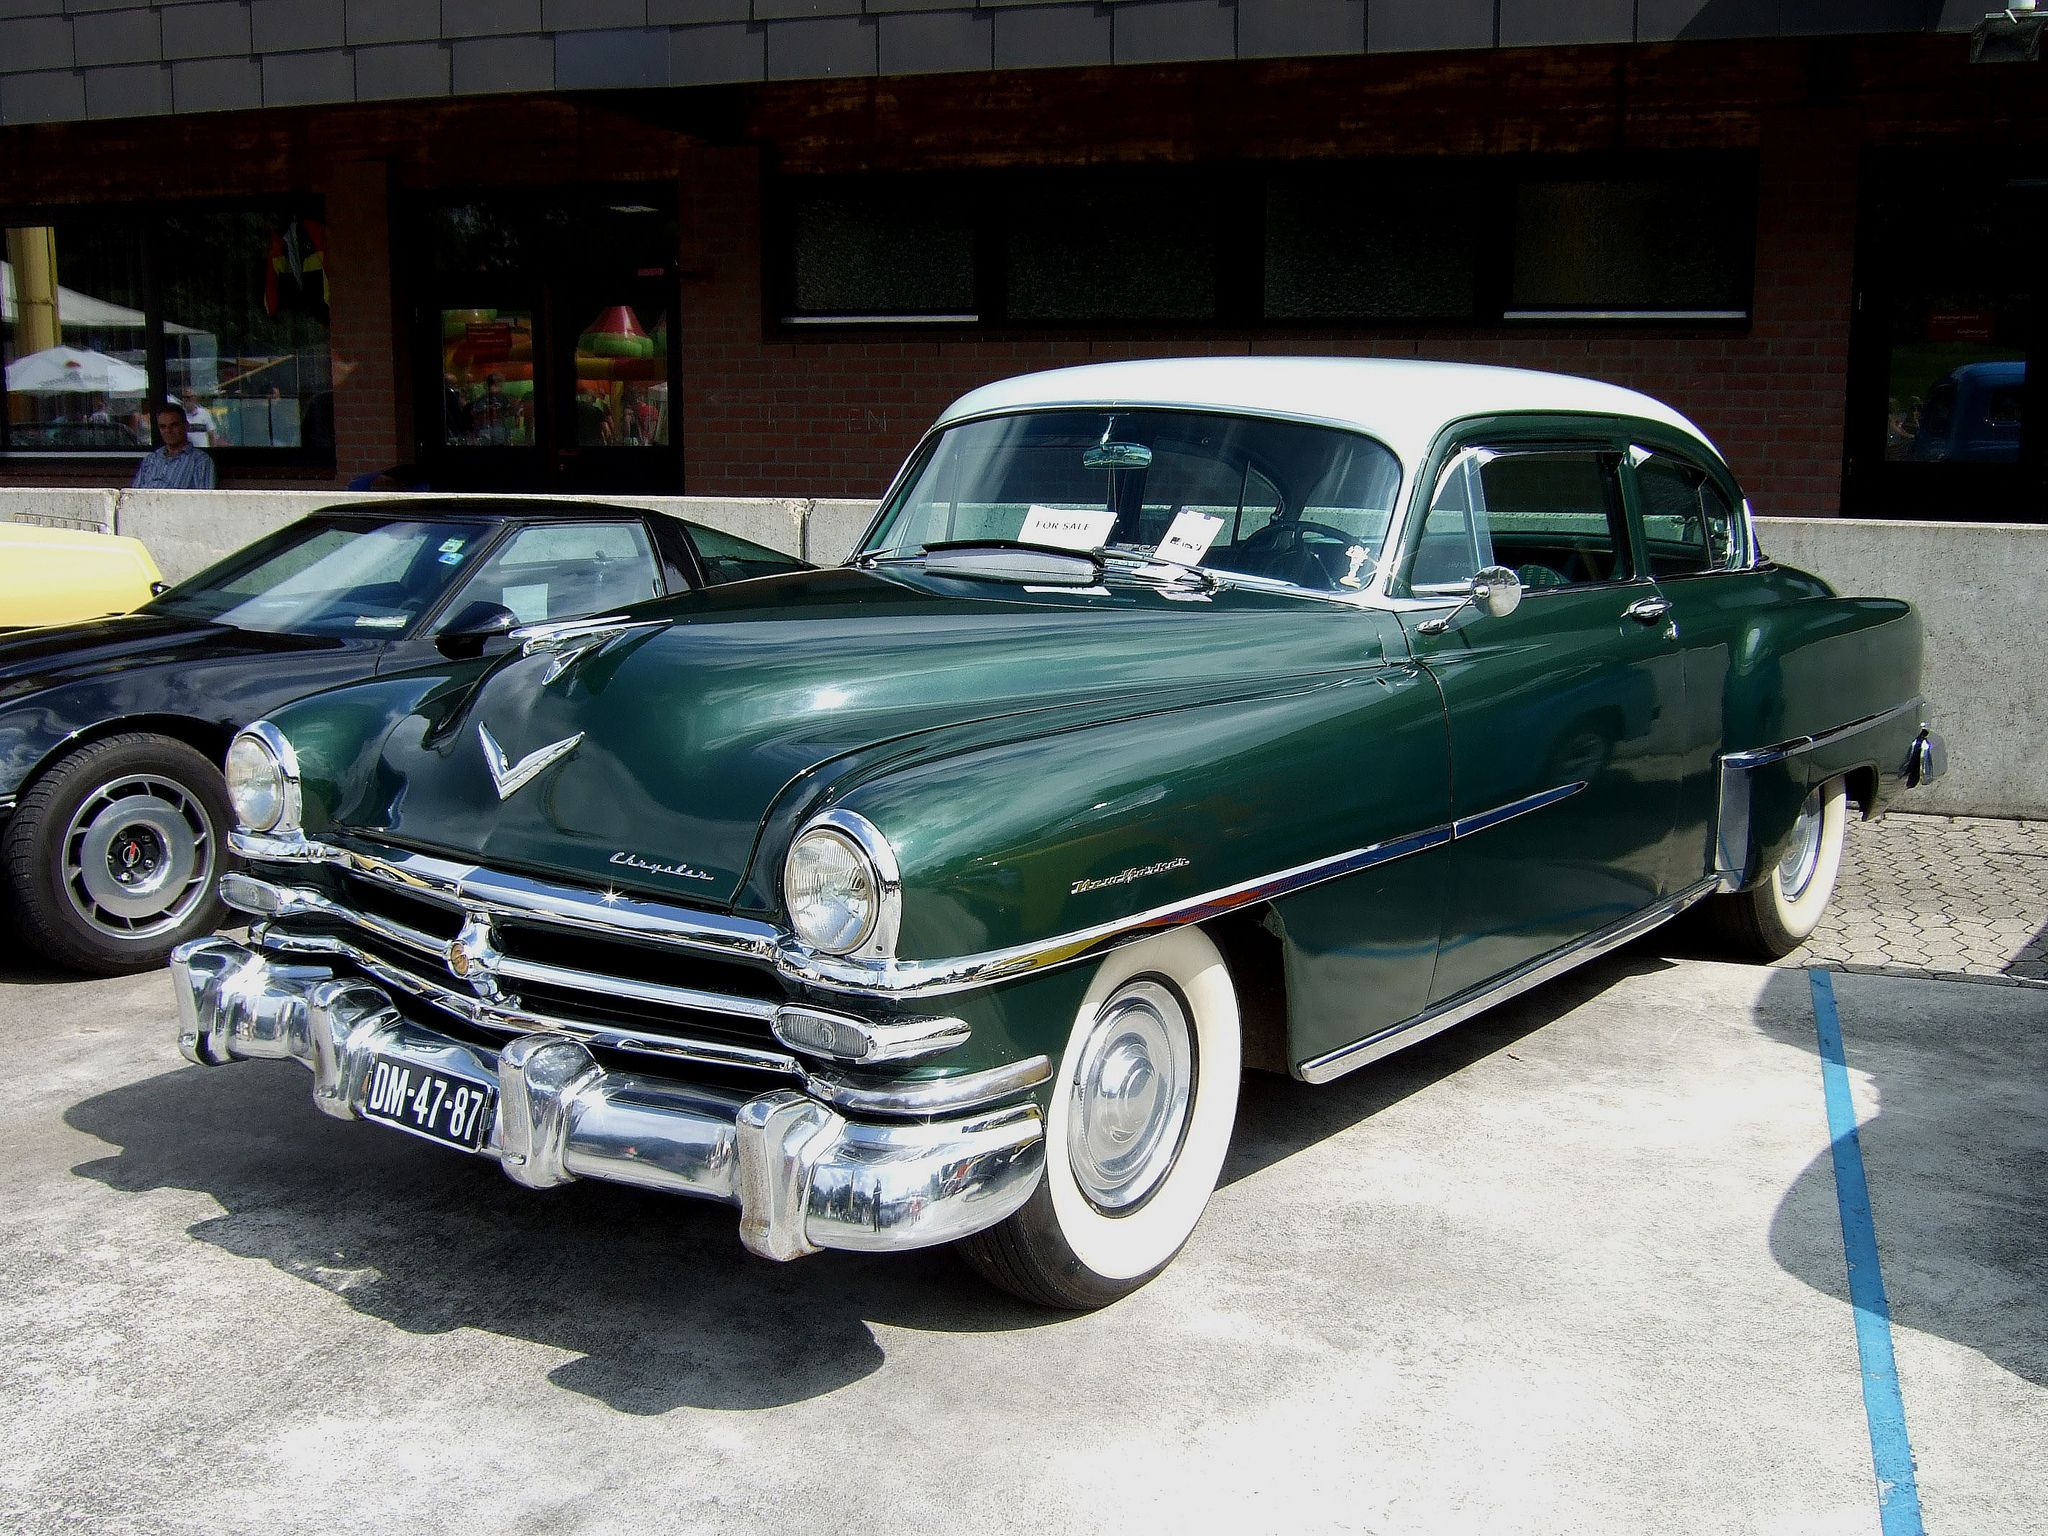 1953 Chrysler New Yorker Club Coupe Maintenance/restoration of old/vintage vehicles: the material for new cogs/casters/gears/pads could be cast polyamide which I (Cast polyamide) can produce. My contact: tatjana.alic@windowslive.com